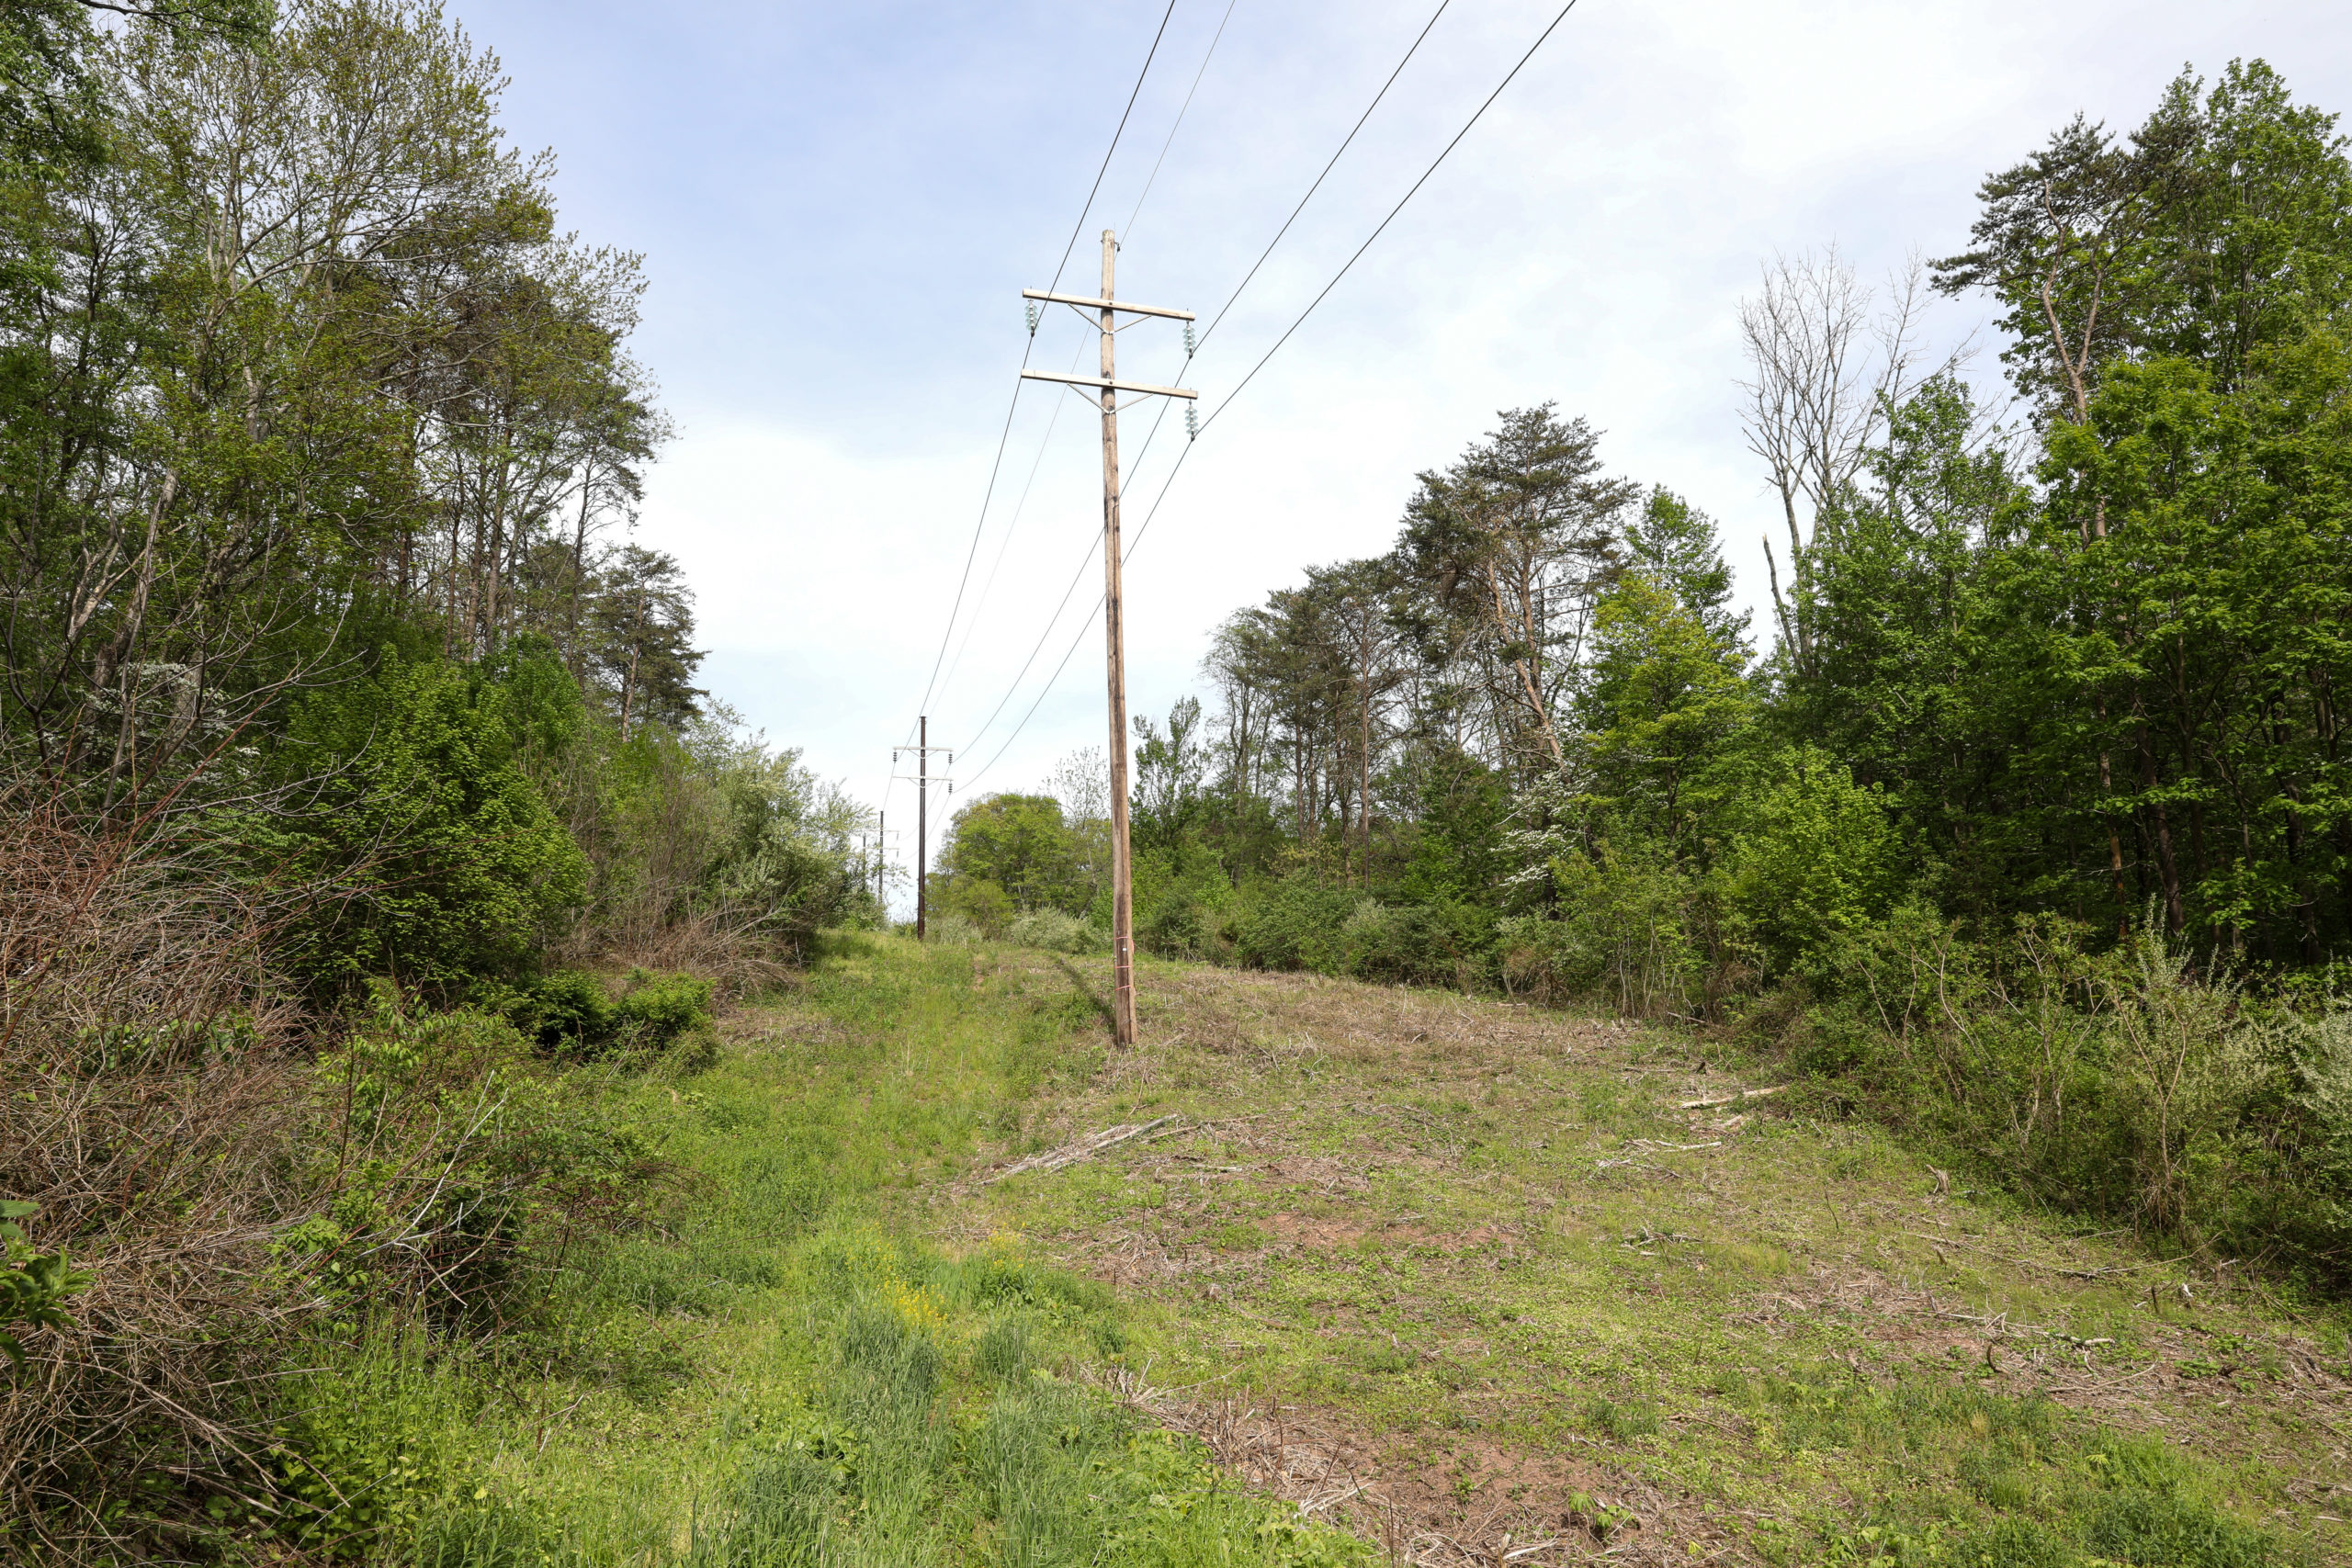 Transmission Line Replacement, Pre-Construction Video and Photography – May 2020